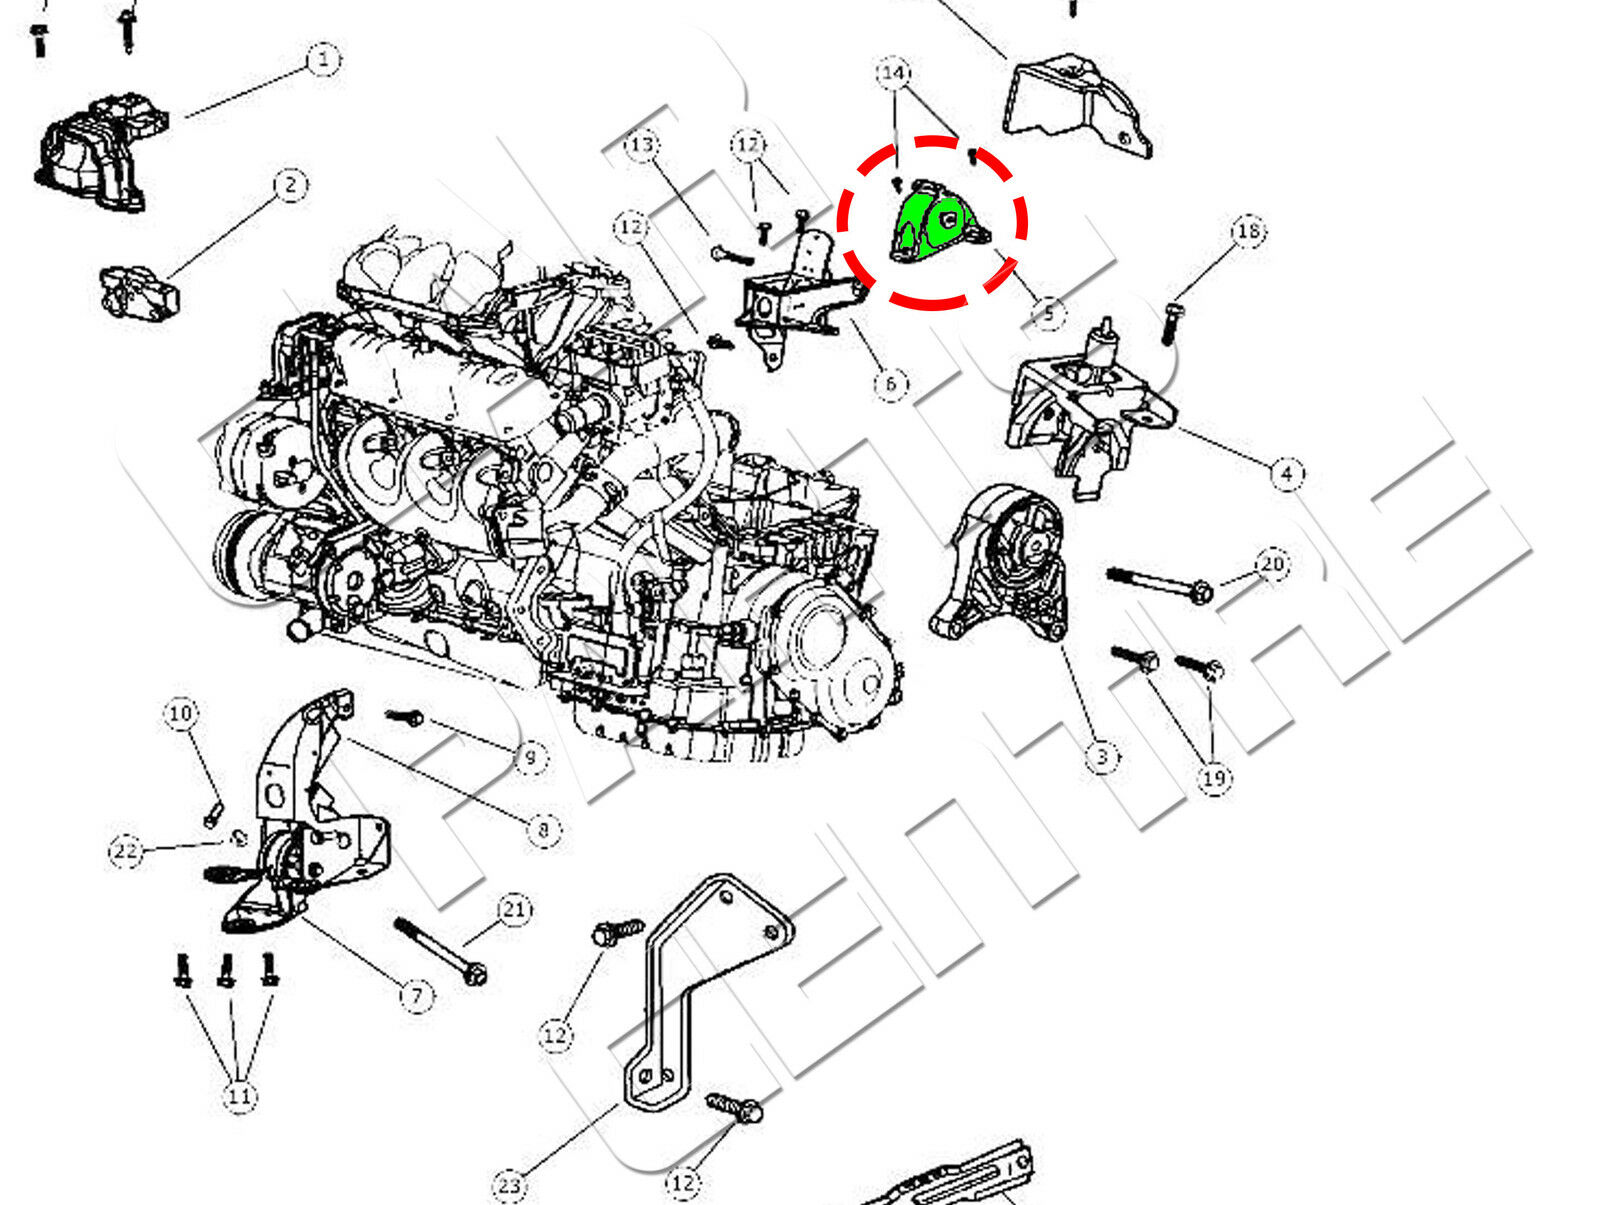 Chrysler 3 8 Litre Engine Diagram • Wiring Diagram For Free